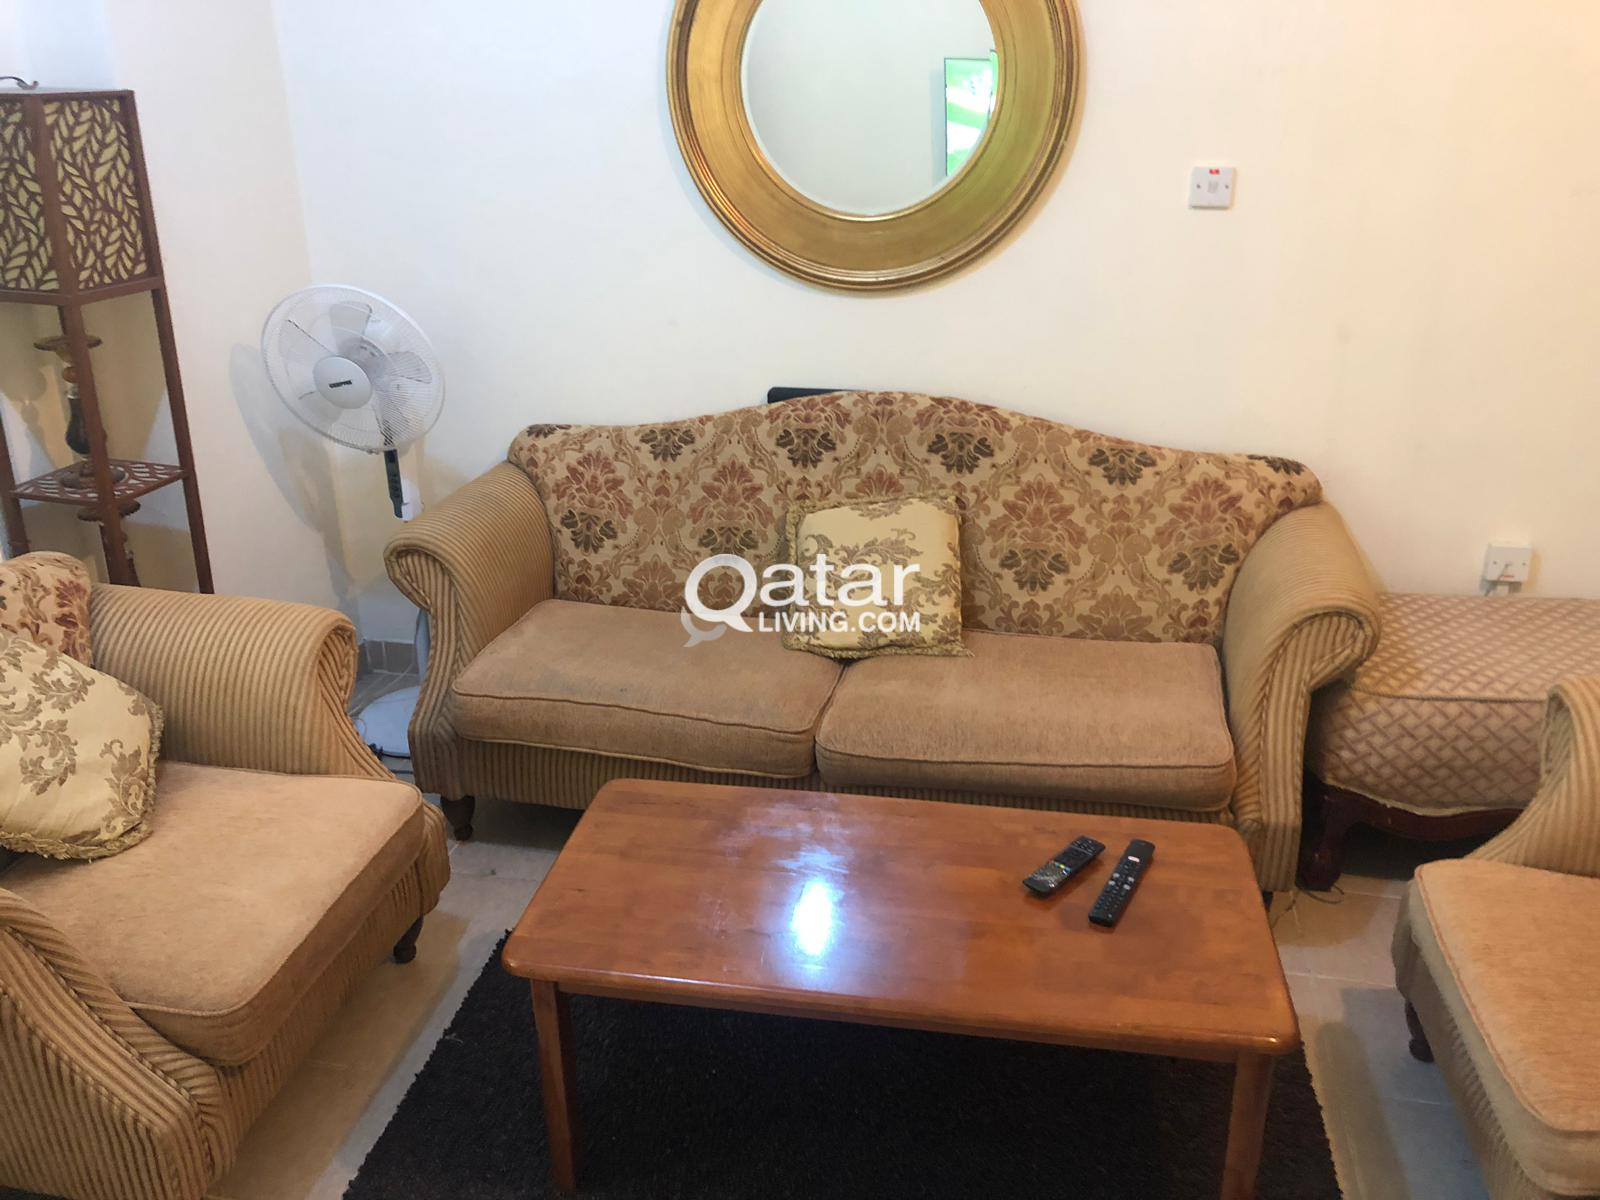 5 Seater Sofa - Urgent Move Out Sale